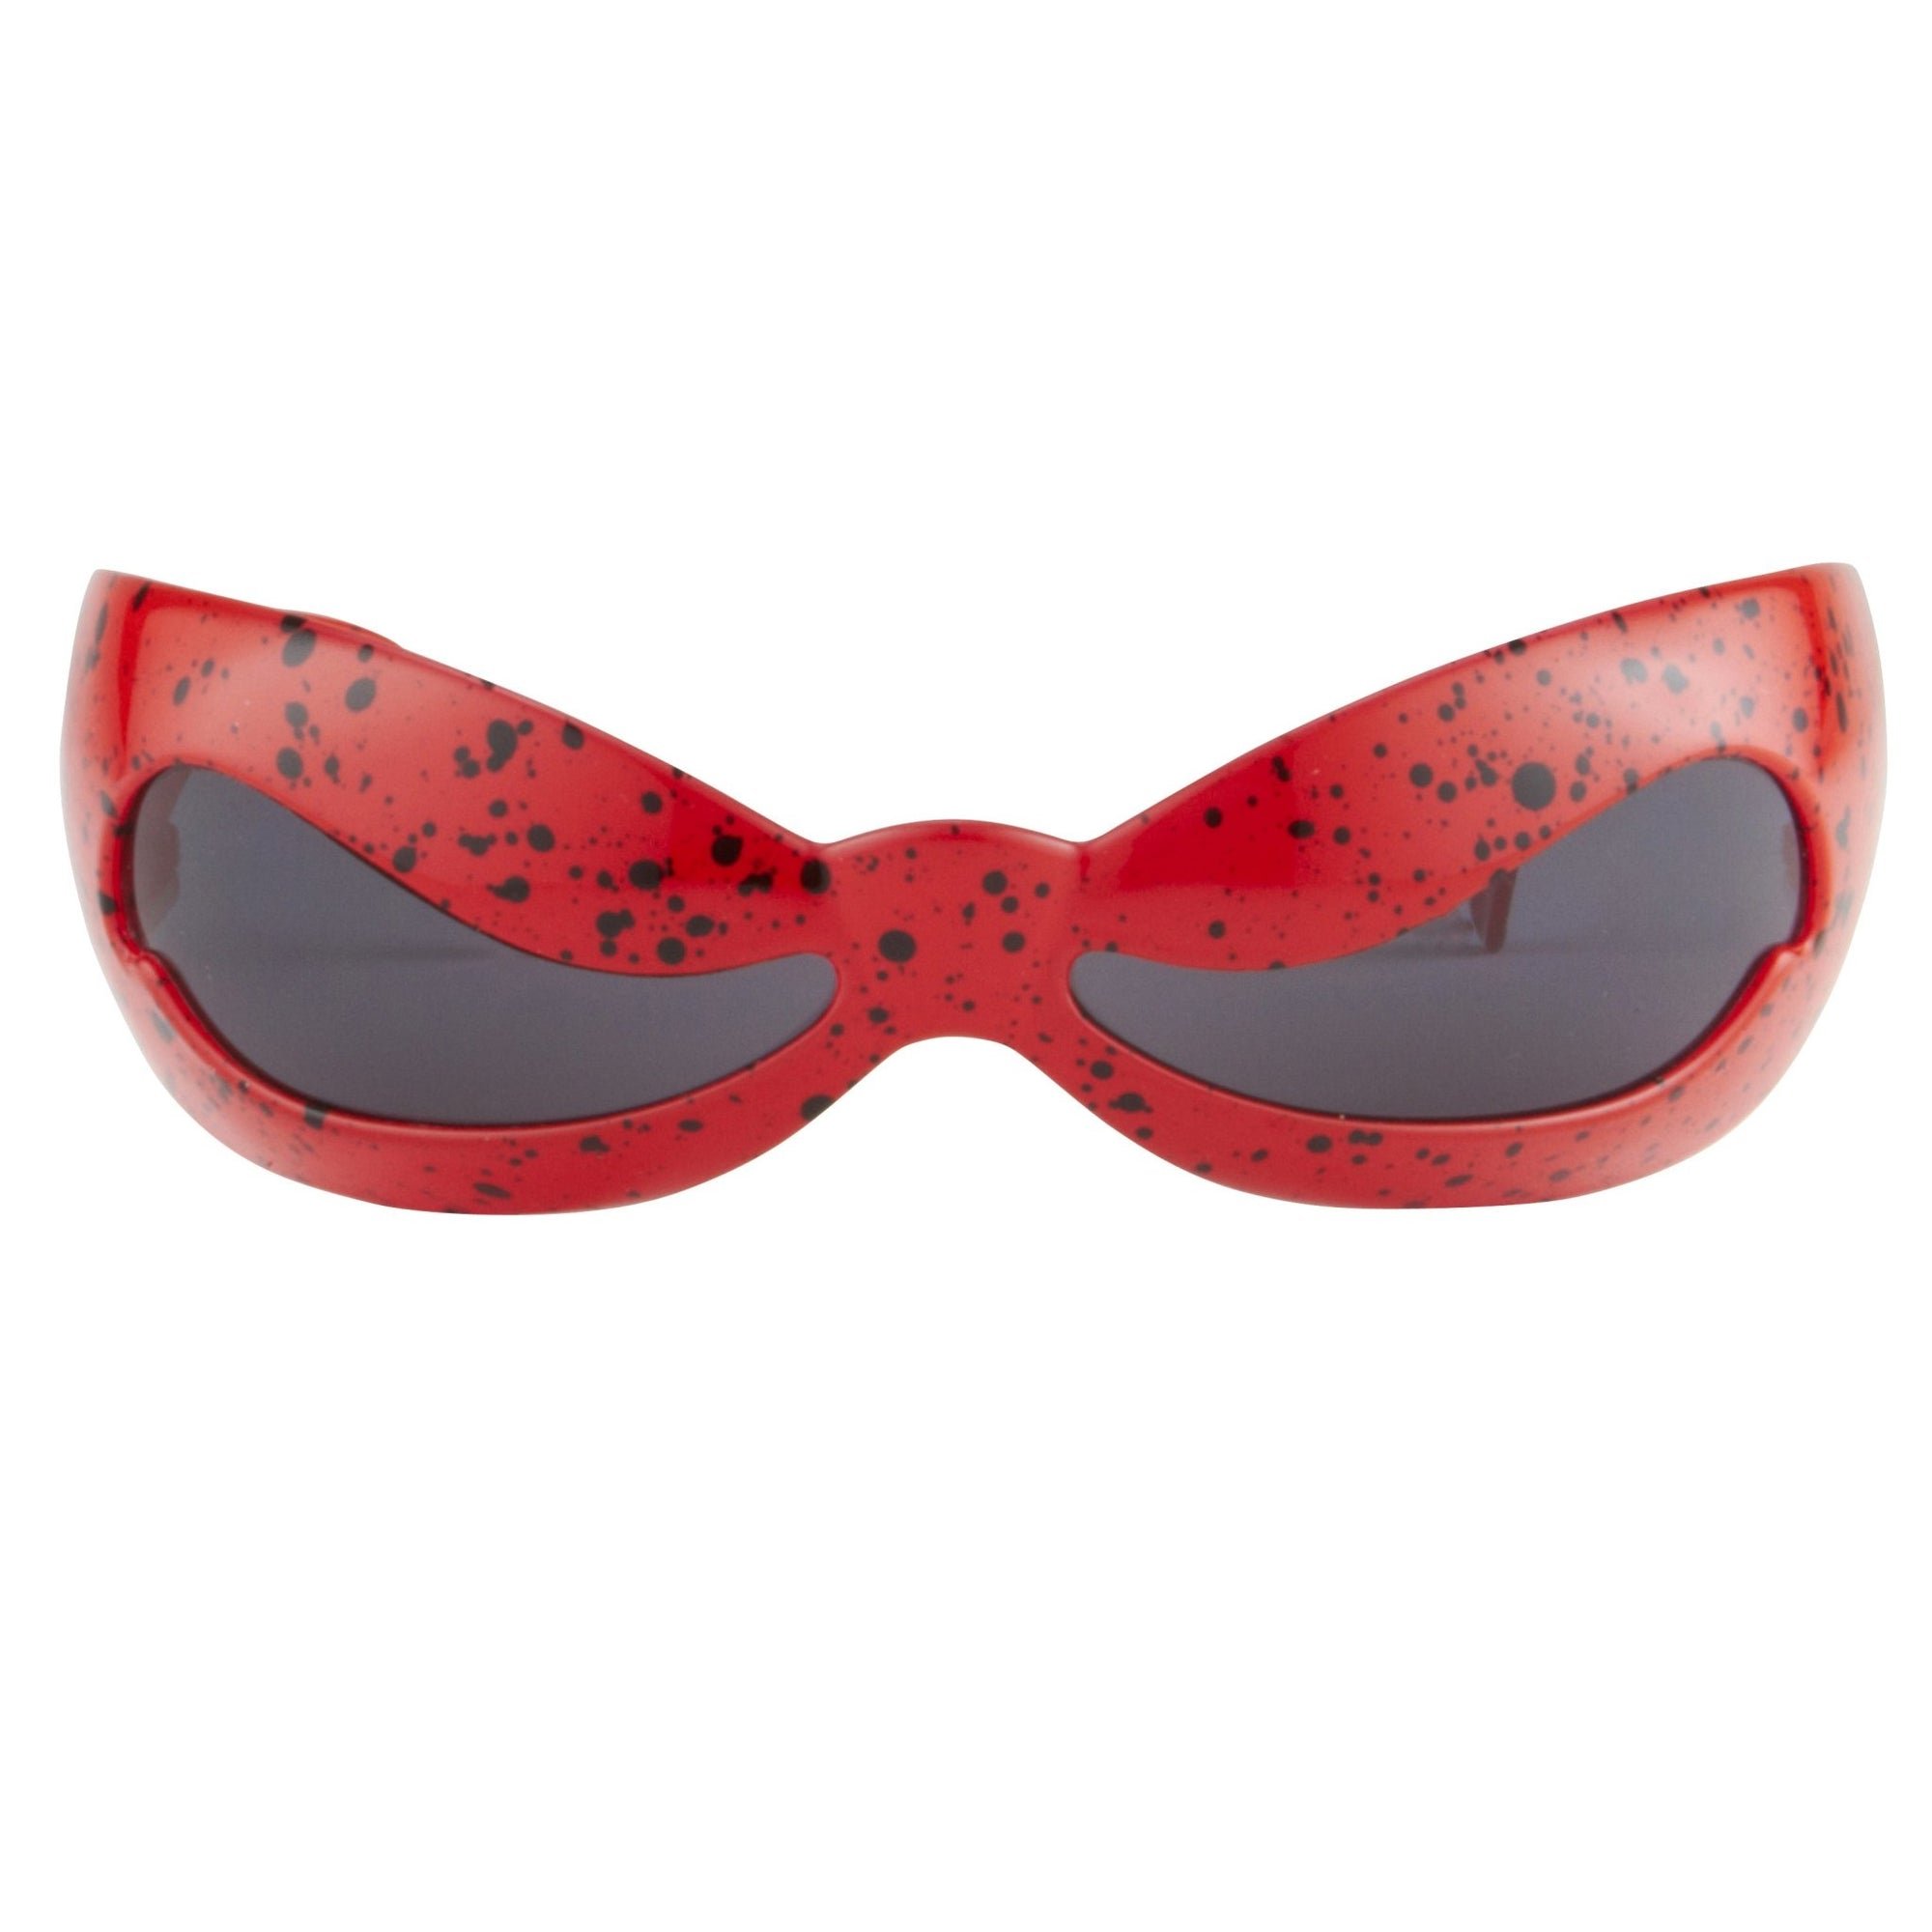 Jeremy Scott Sunglasses Unisex Special Shape Red Splatter With CAT3 Grey Lenses JSNUWAVEC4SUN - Watches & Crystals